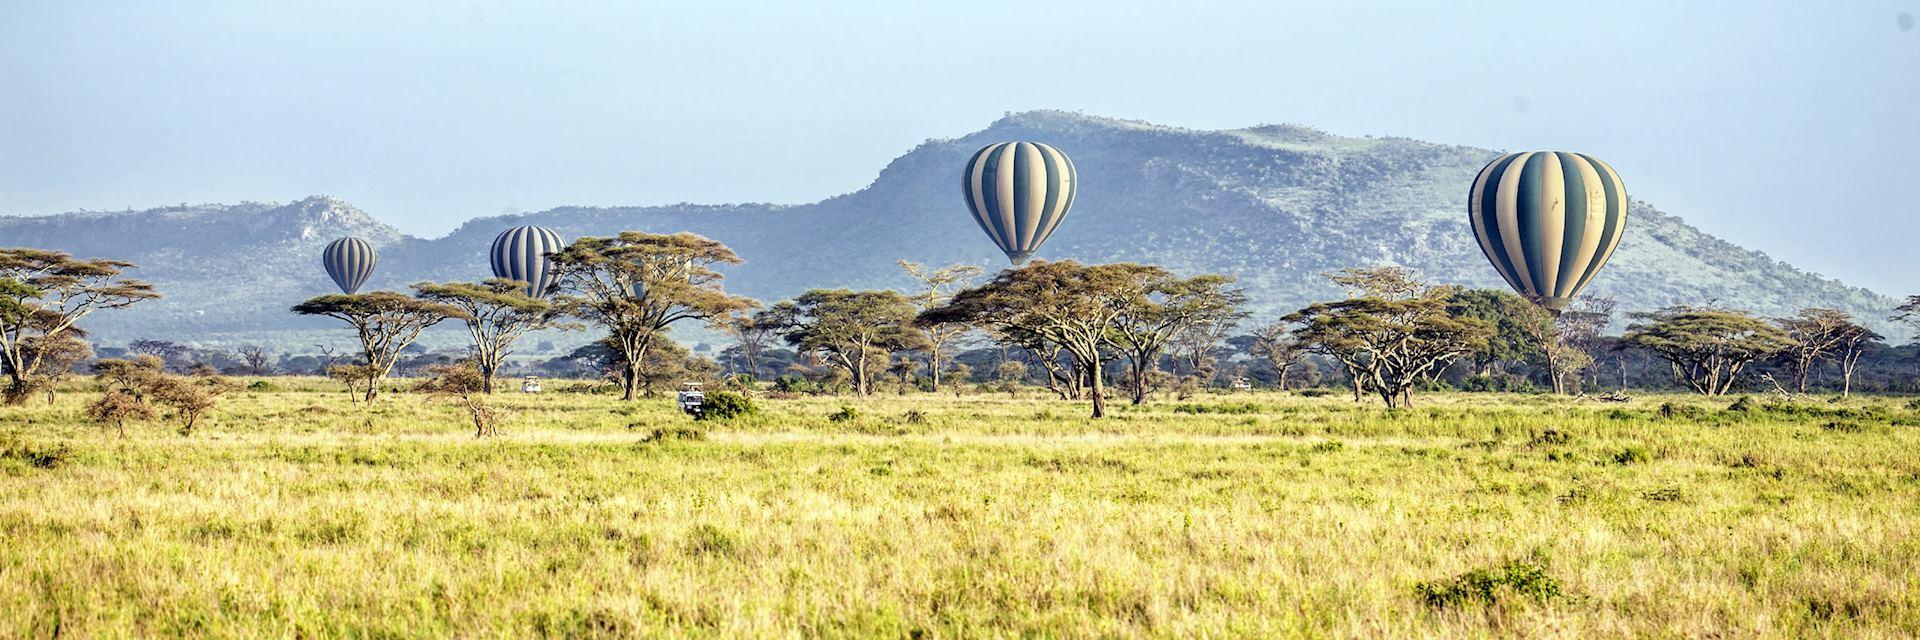 Balloons over the Serengeti National Park